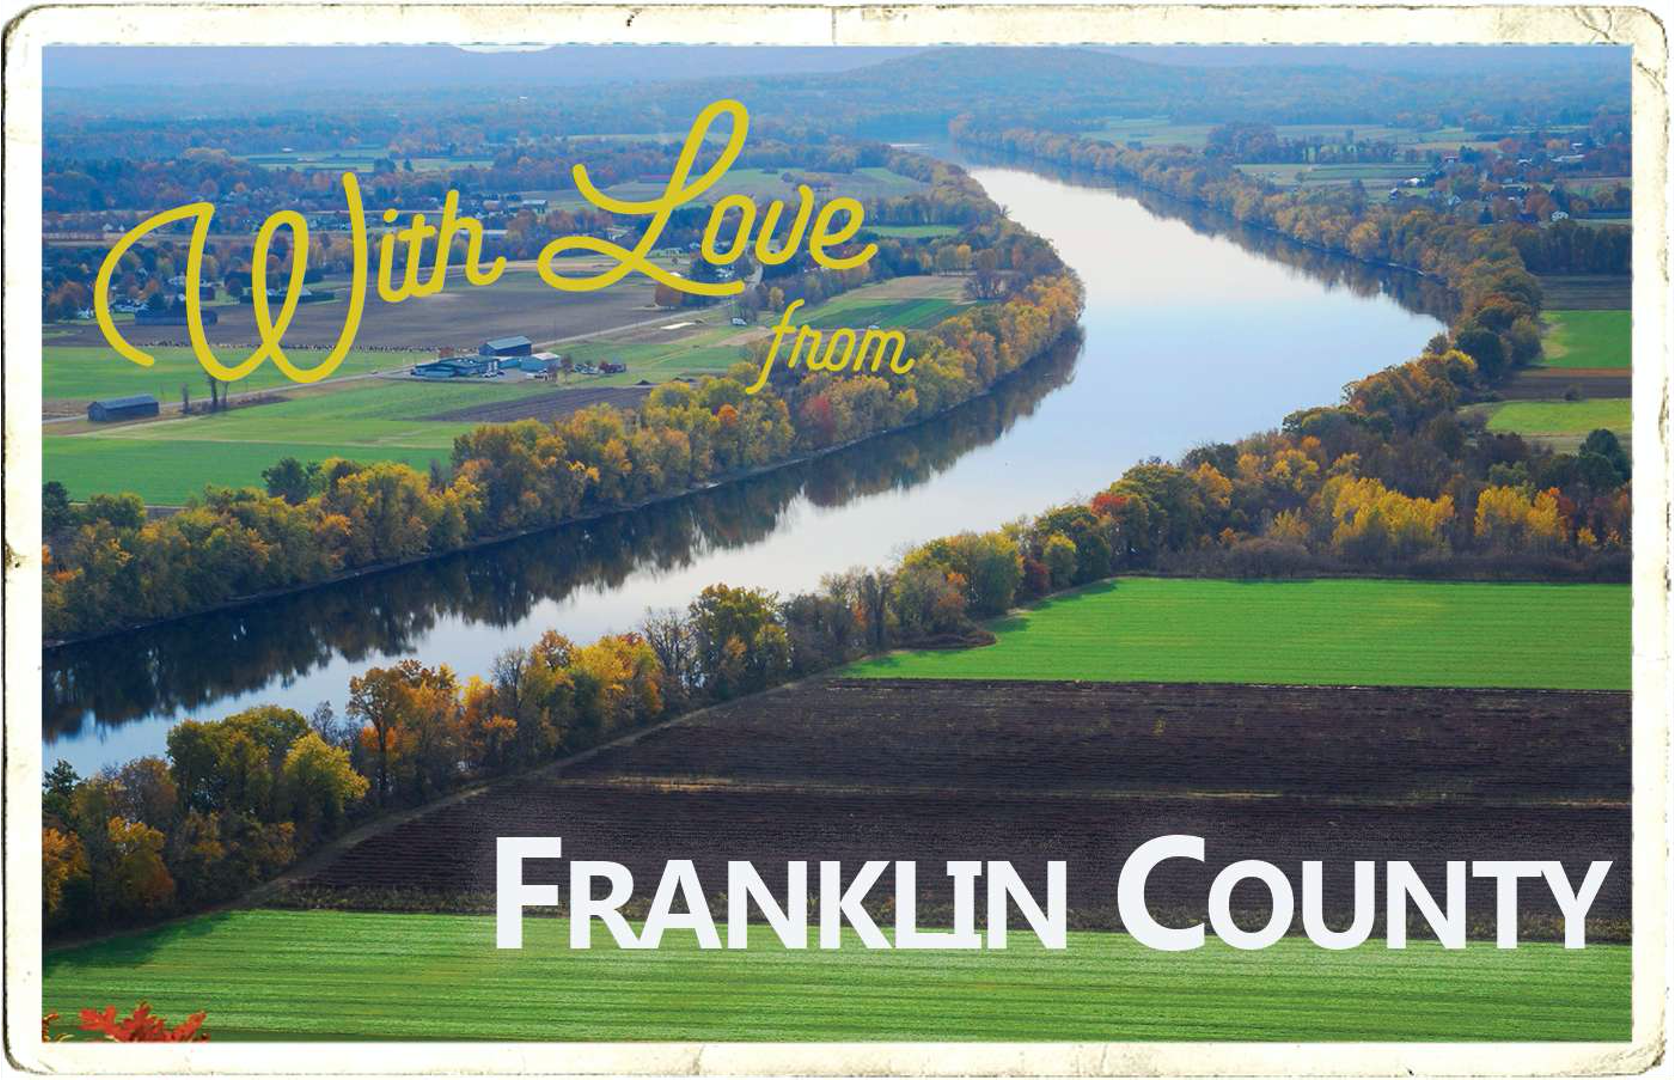 With Love from Franklin County